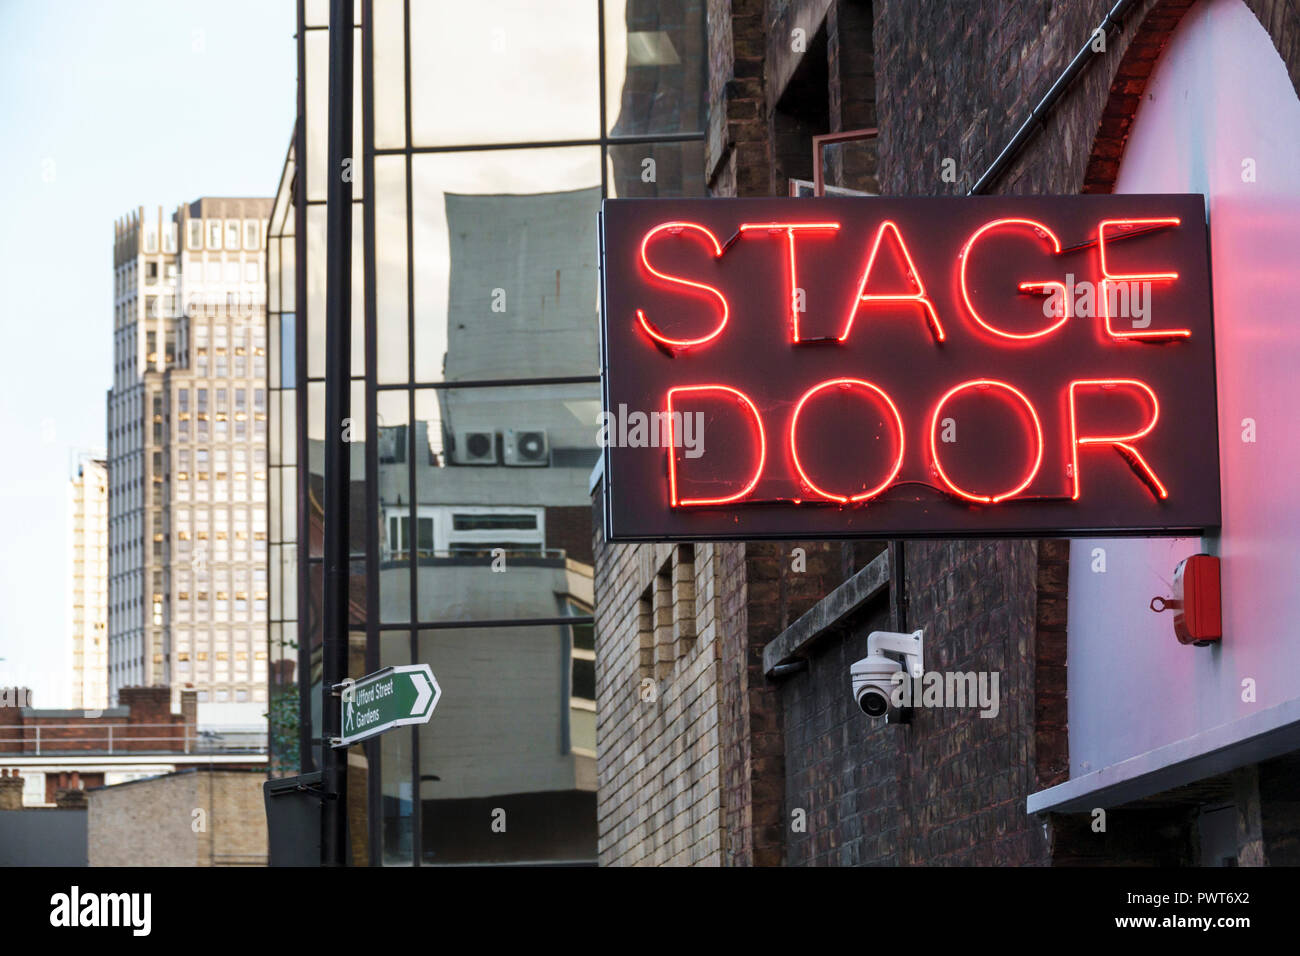 London England United Kingdom Great Britain Lambeth Waterloo The Old Vic theatre theater exterior historic building Stage Door neon sign - Stock Image